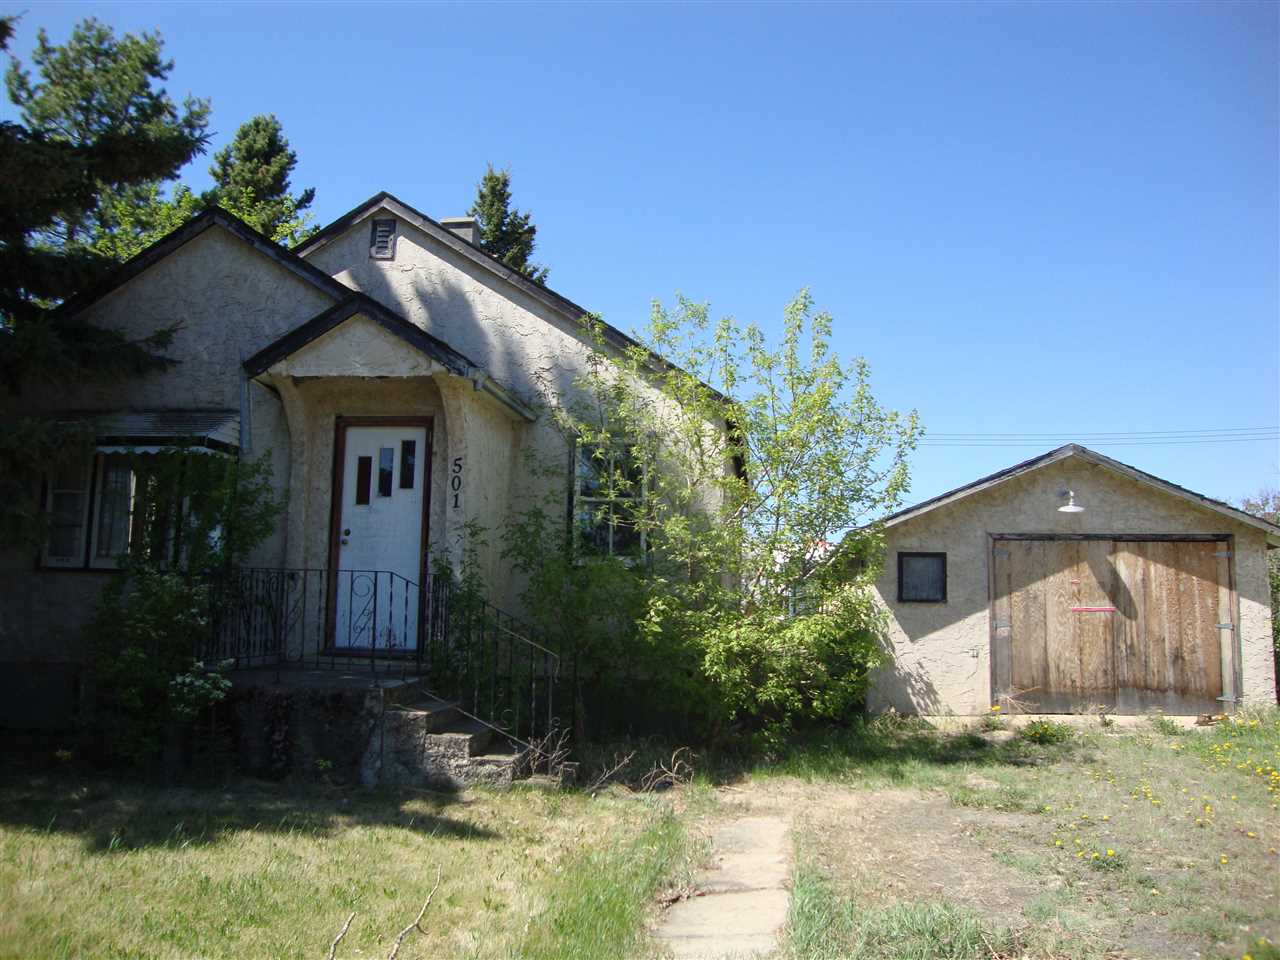 A property for the ambitious!!!  Potential value in the interior that could be salvageable (ie. trim, character windows, doors, hardwood floor). Foundation is not good. Garage is useable. Lot is huge -  50 x 125.